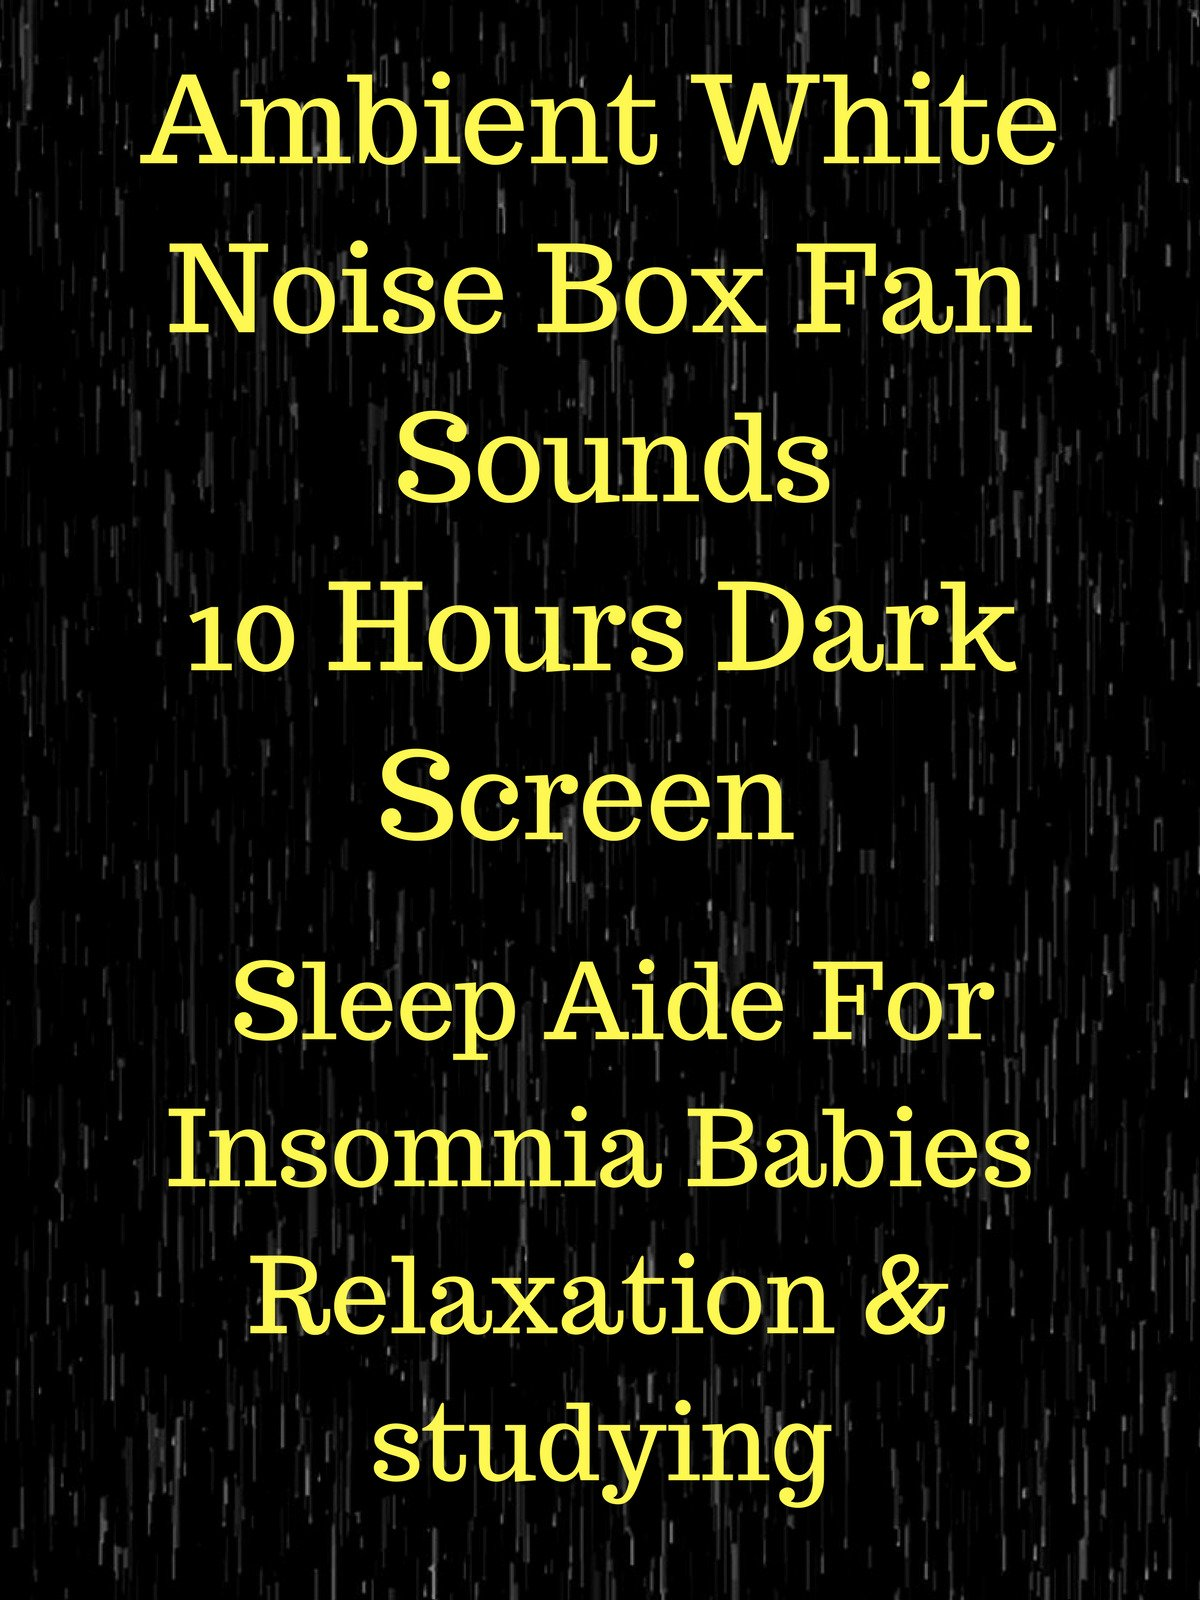 Ambient white noise box fan sounds 10 hours dark screen sleep aide for insomnia relaxation babies & studying